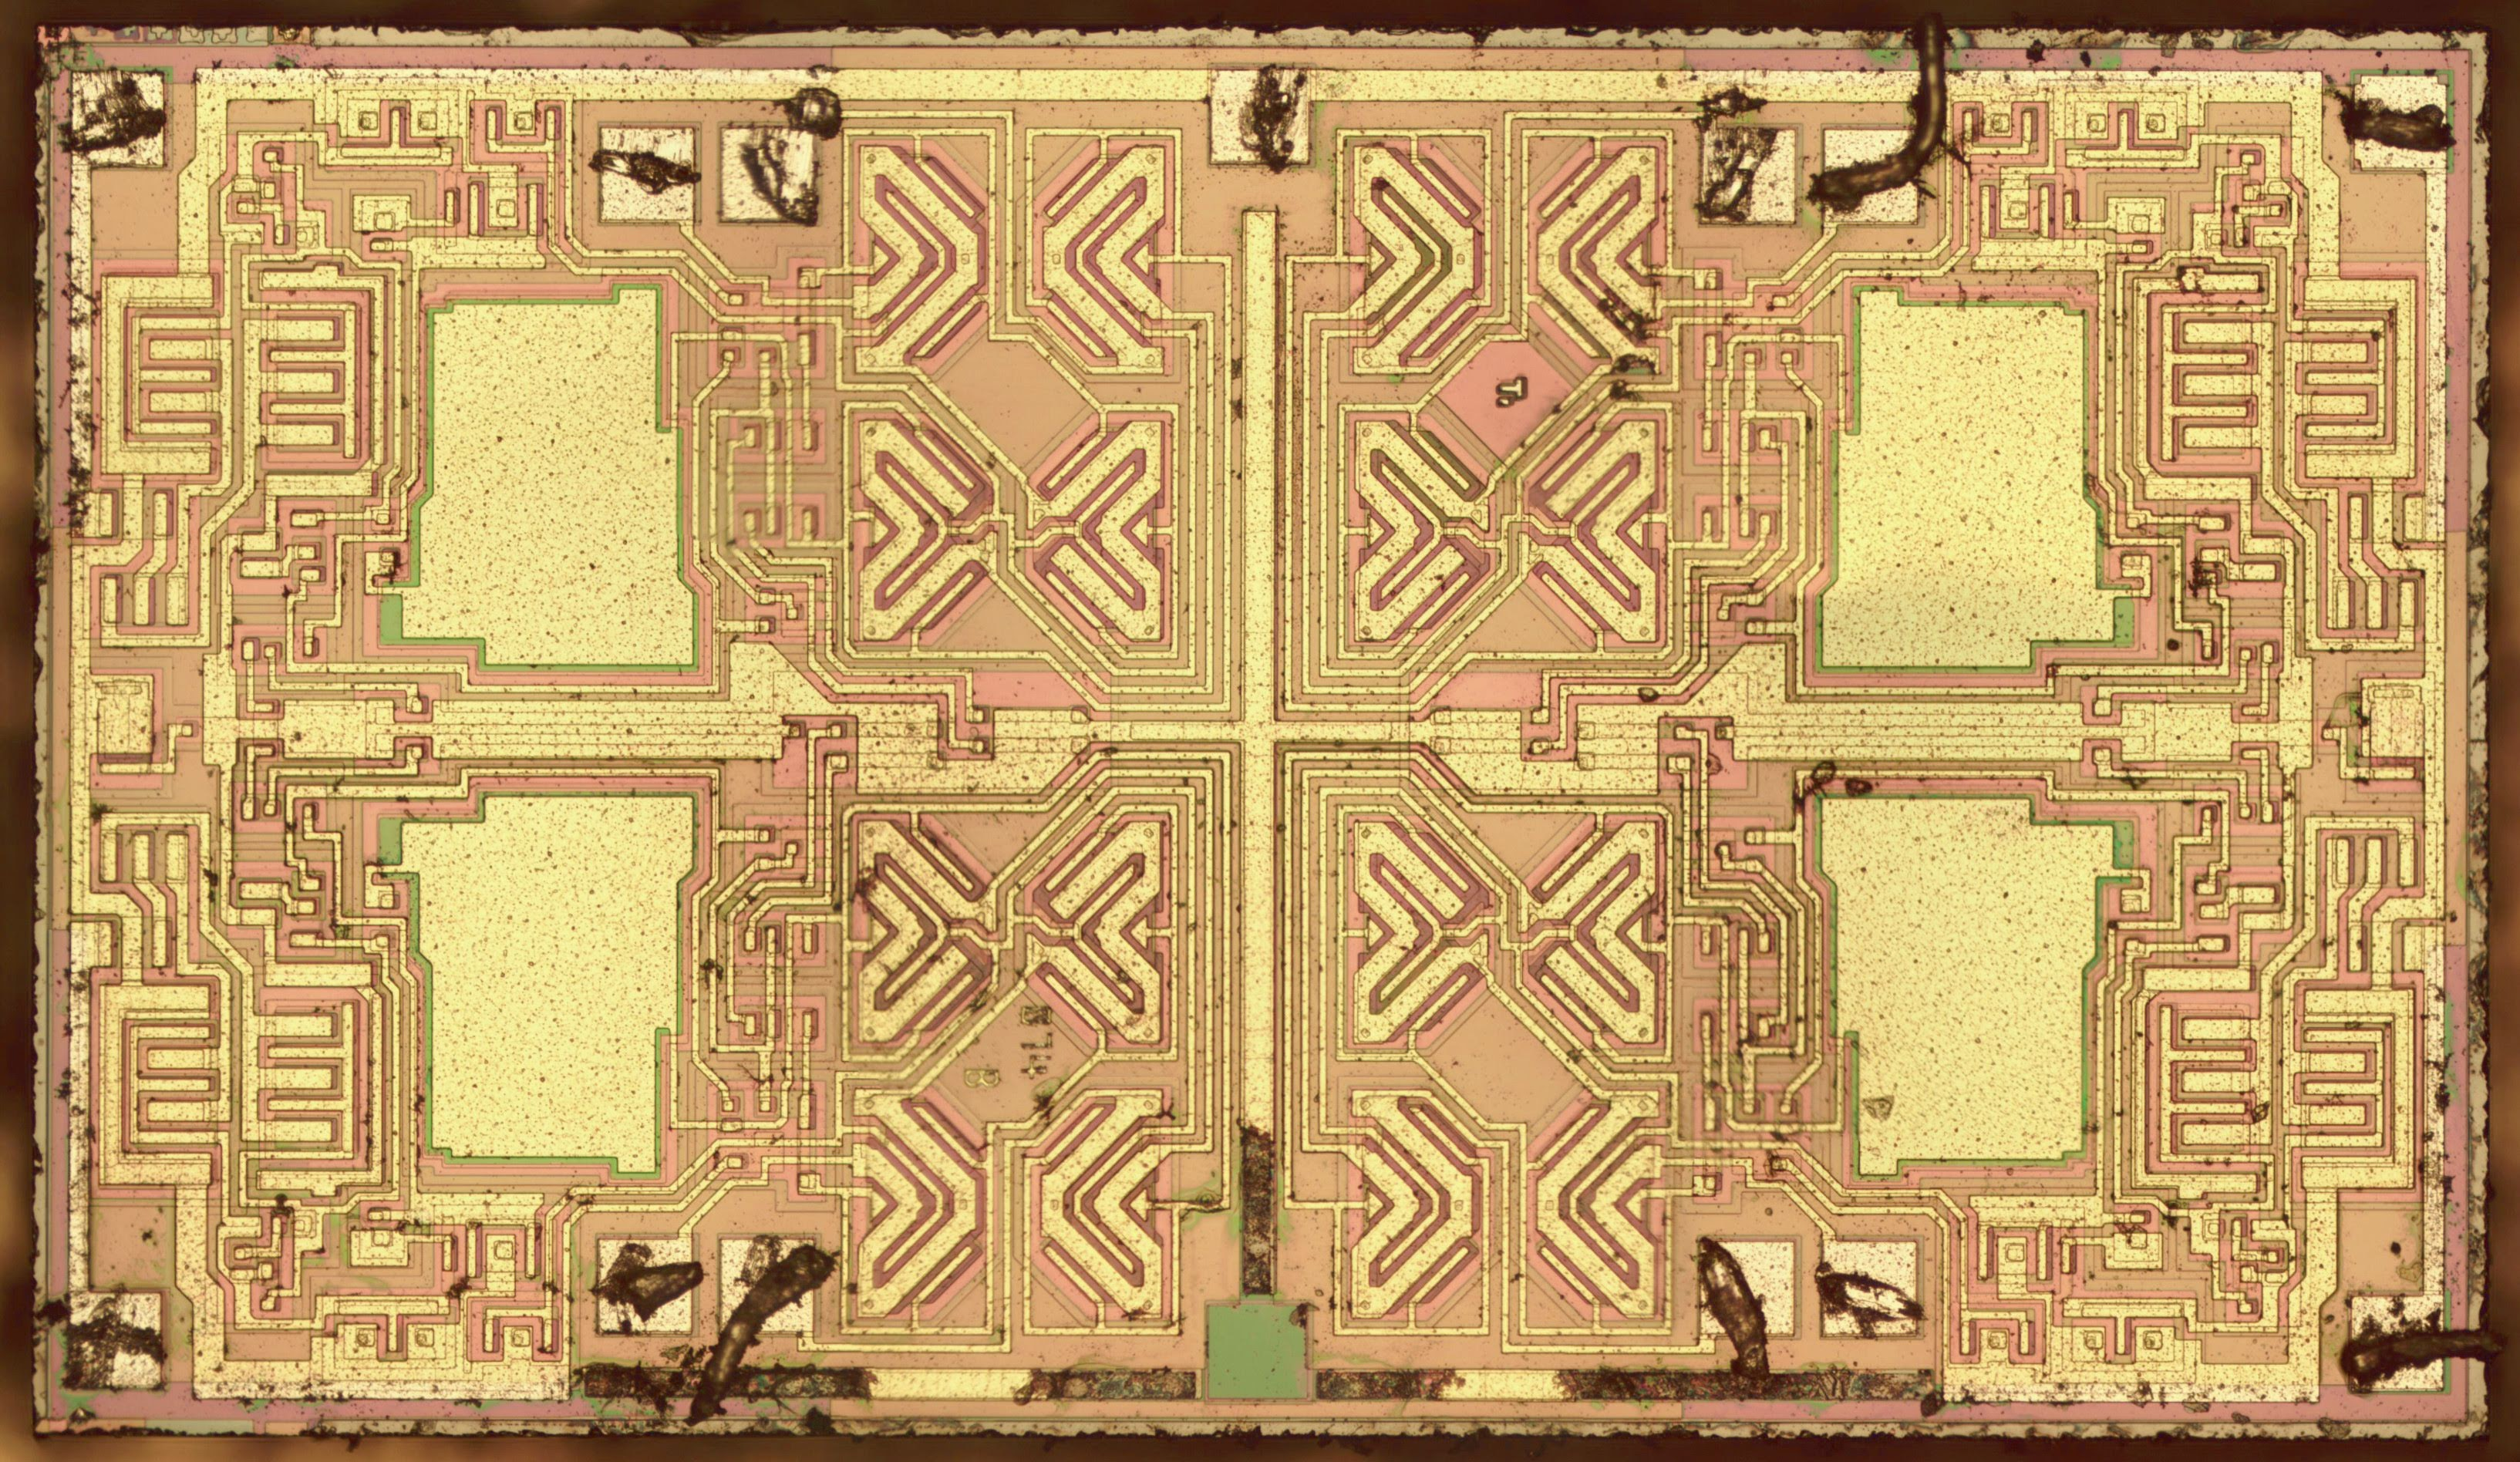 Silicon Die Analysis Inside An Op Amp With Interesting Butterfly 741 Circuit Diagrams Photo Of The Tl084 Bond Wires Removed